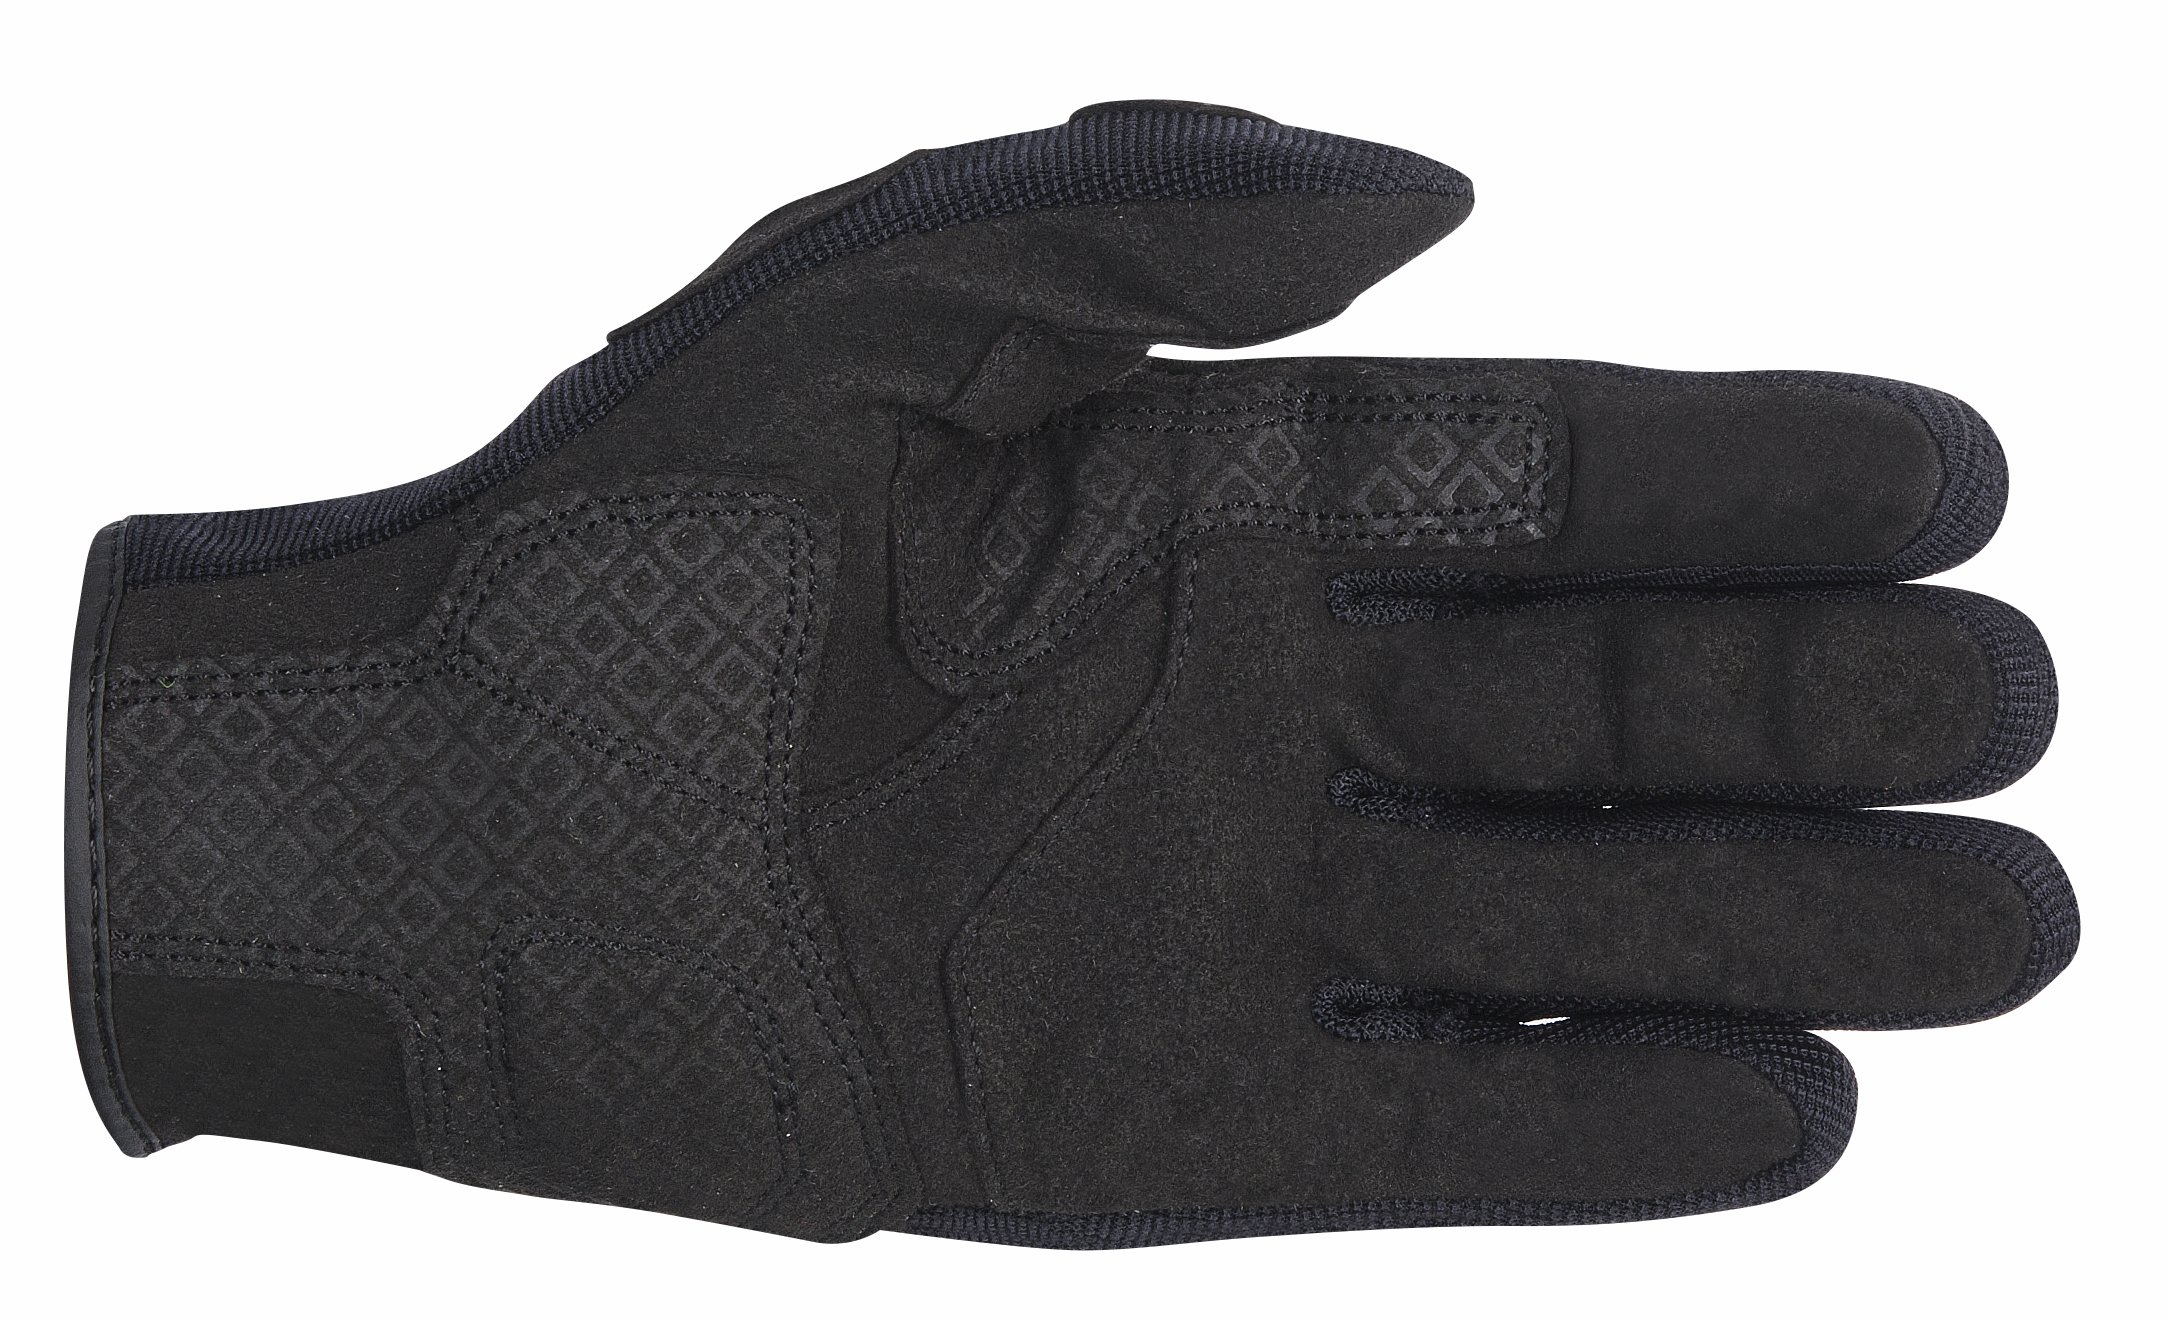 Alpinestars Spartan Men's Street Motorcycle Gloves - Black / Large